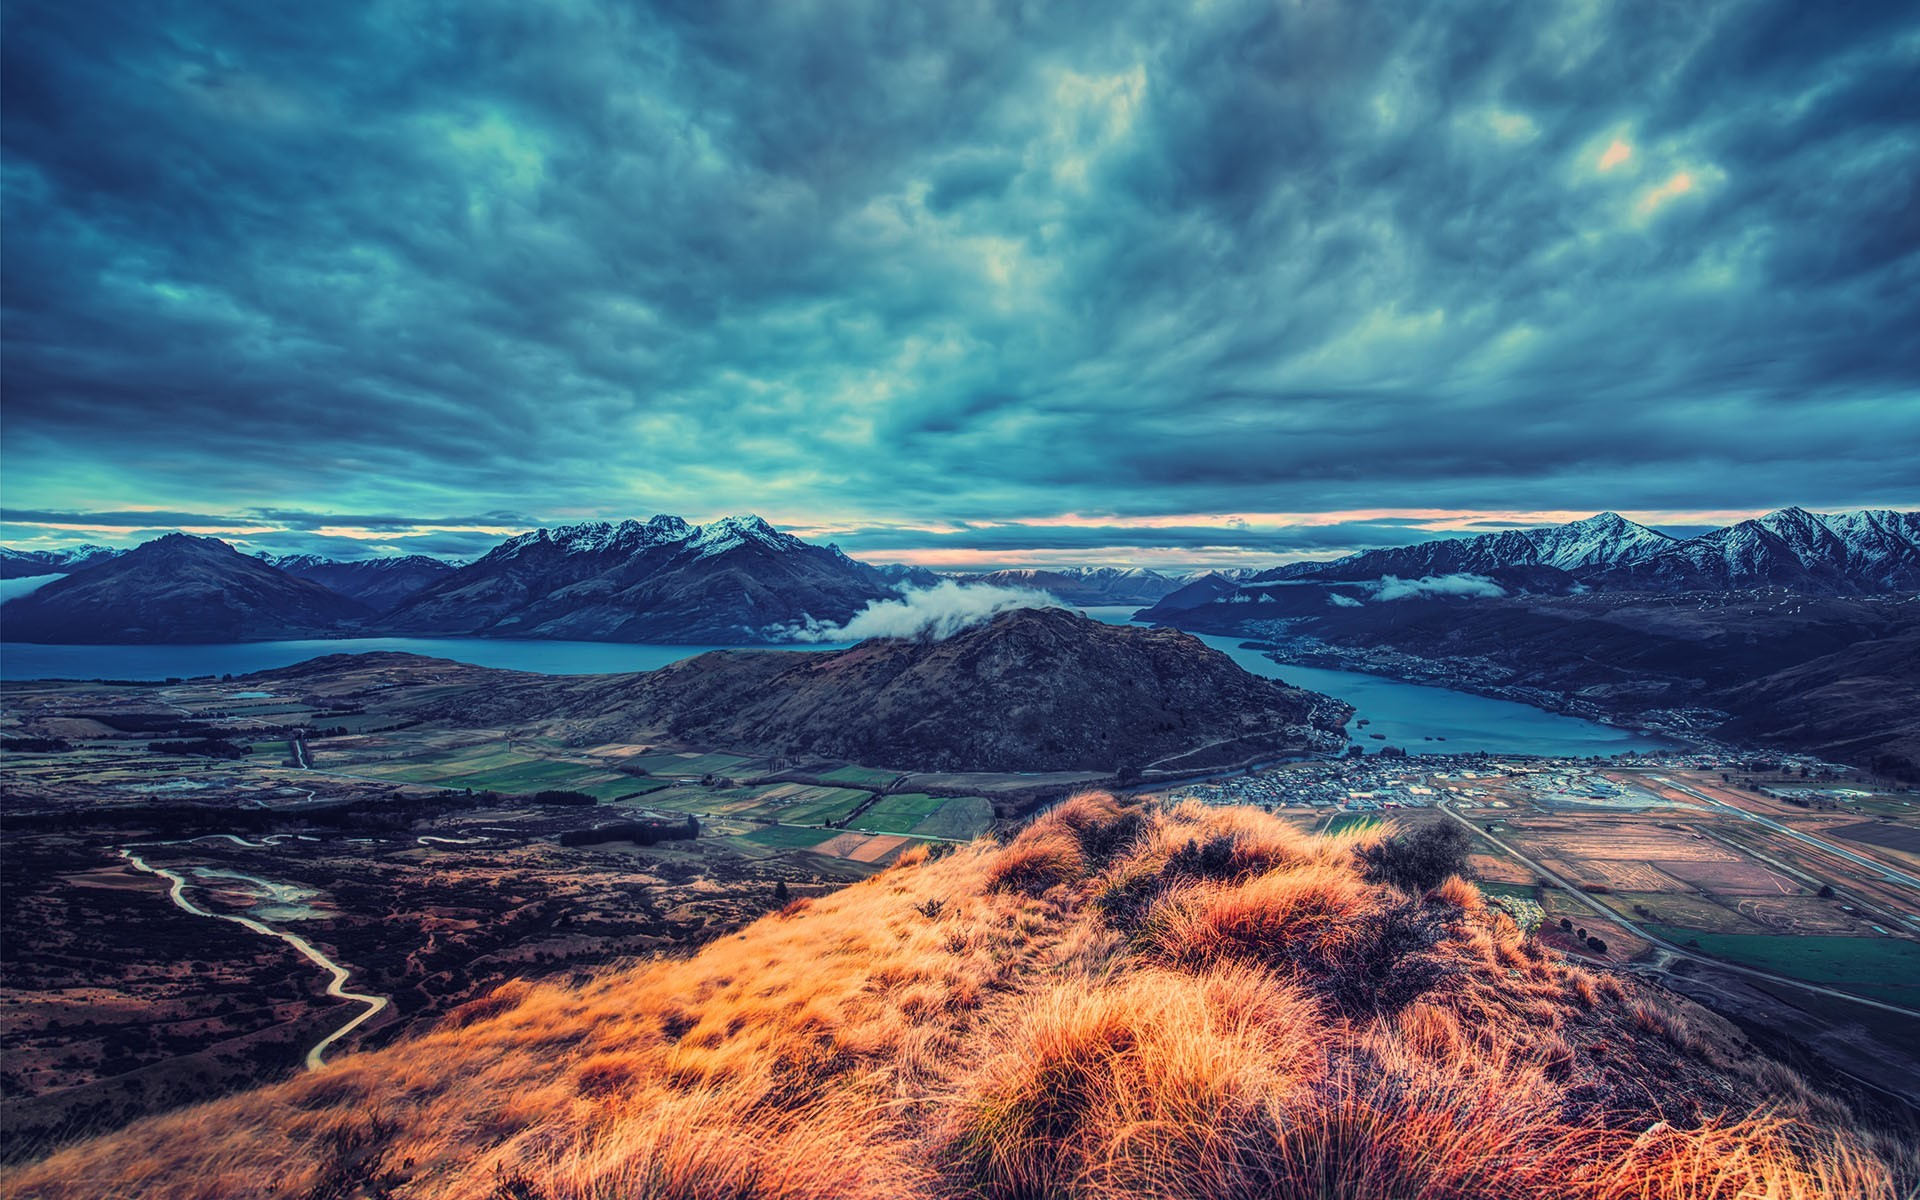 hills mountains field lake road grass snowy peak evening nature overcast landscape hdr new zealand clouds